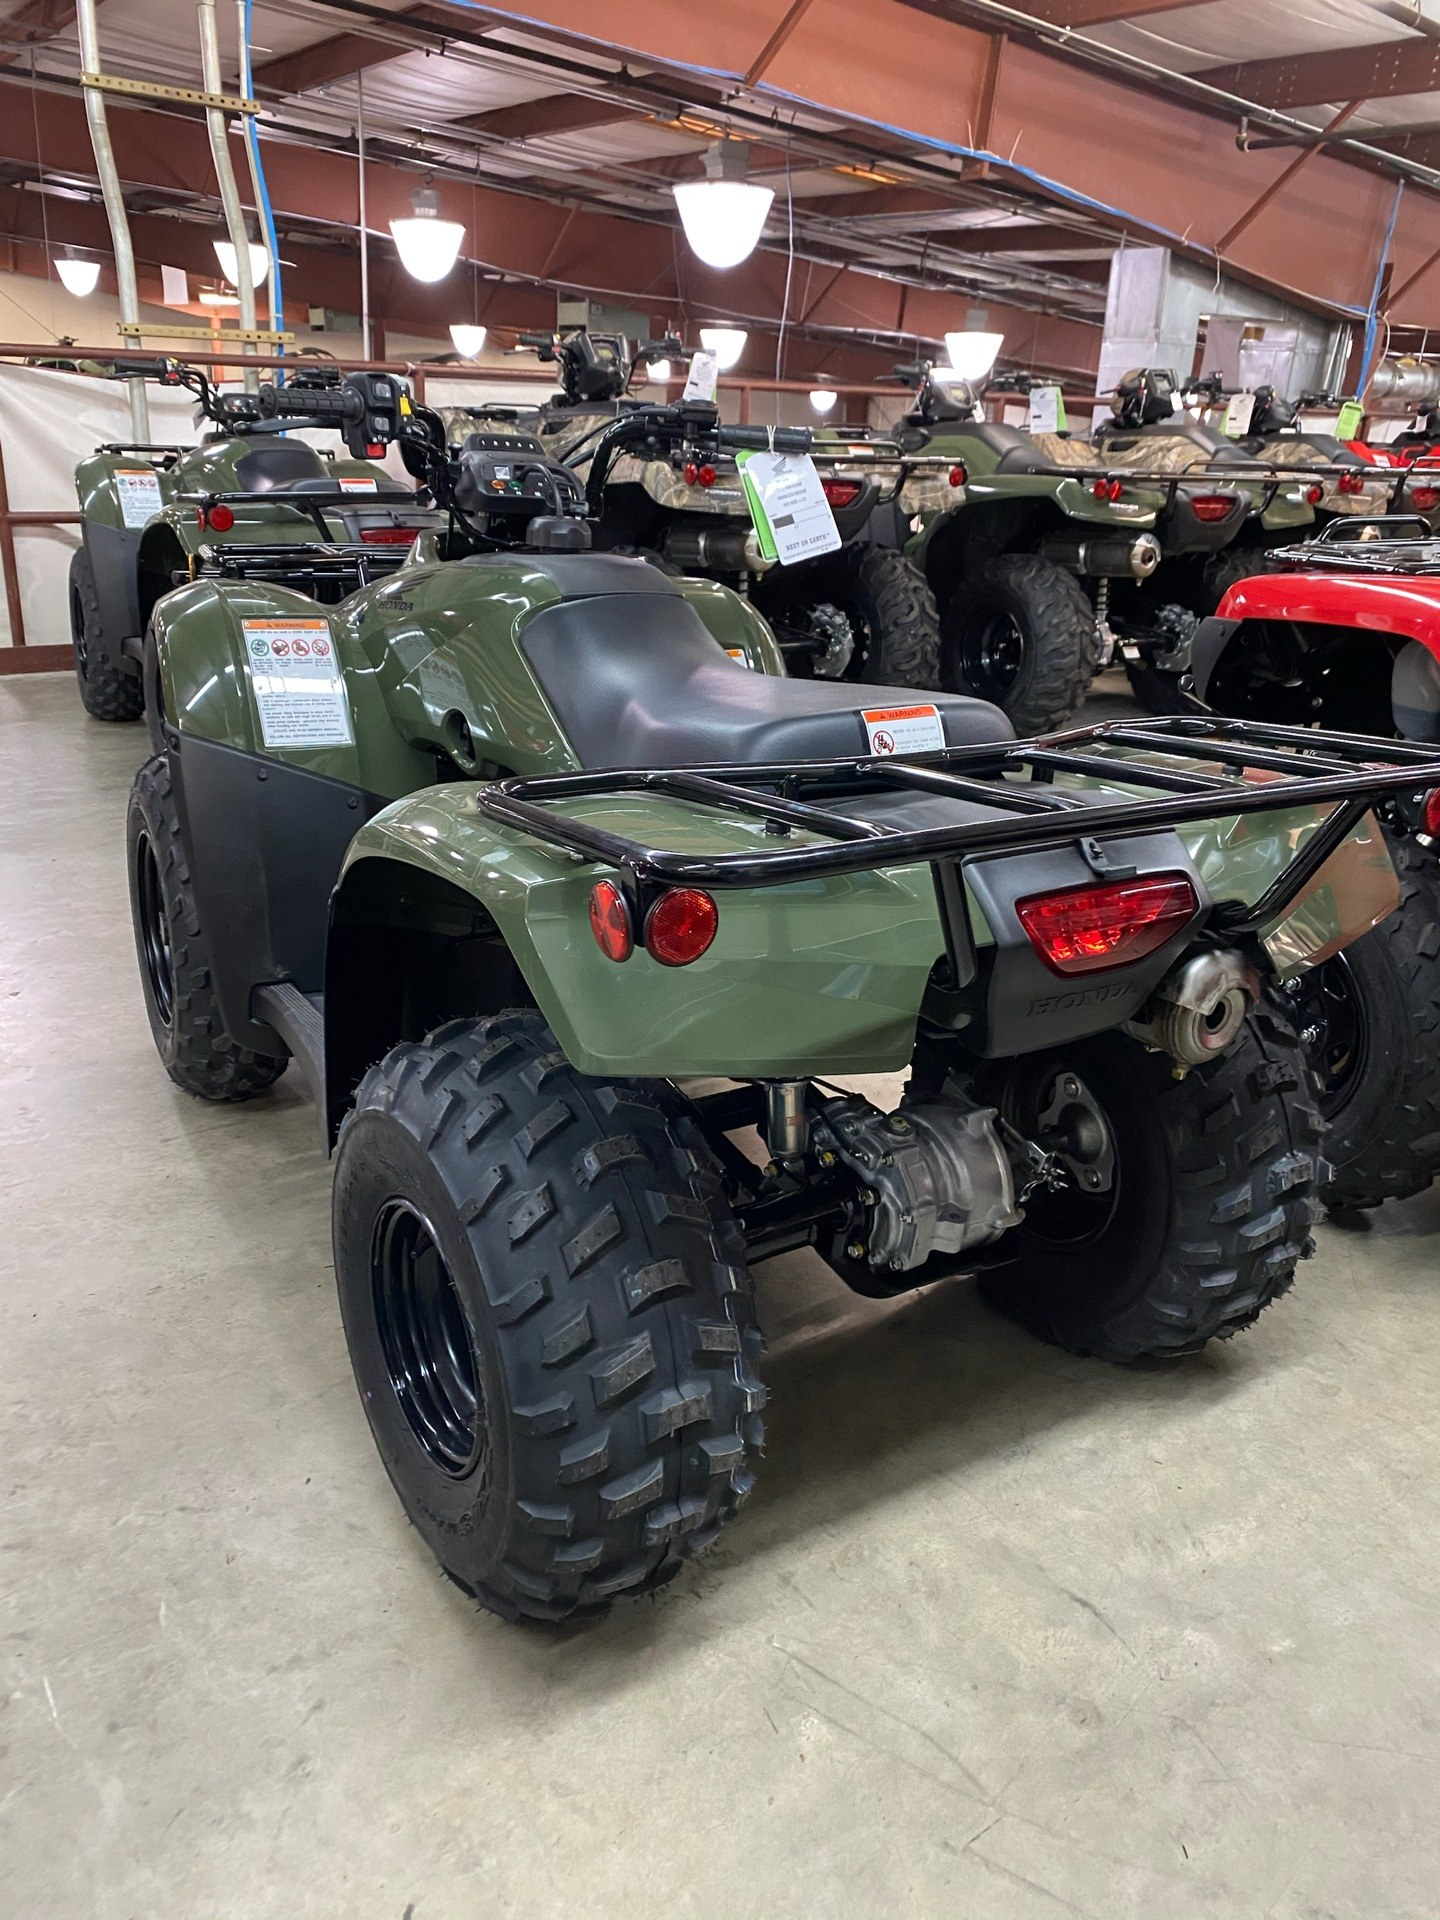 2020 Honda FourTrax Recon ES in Statesville, North Carolina - Photo 2